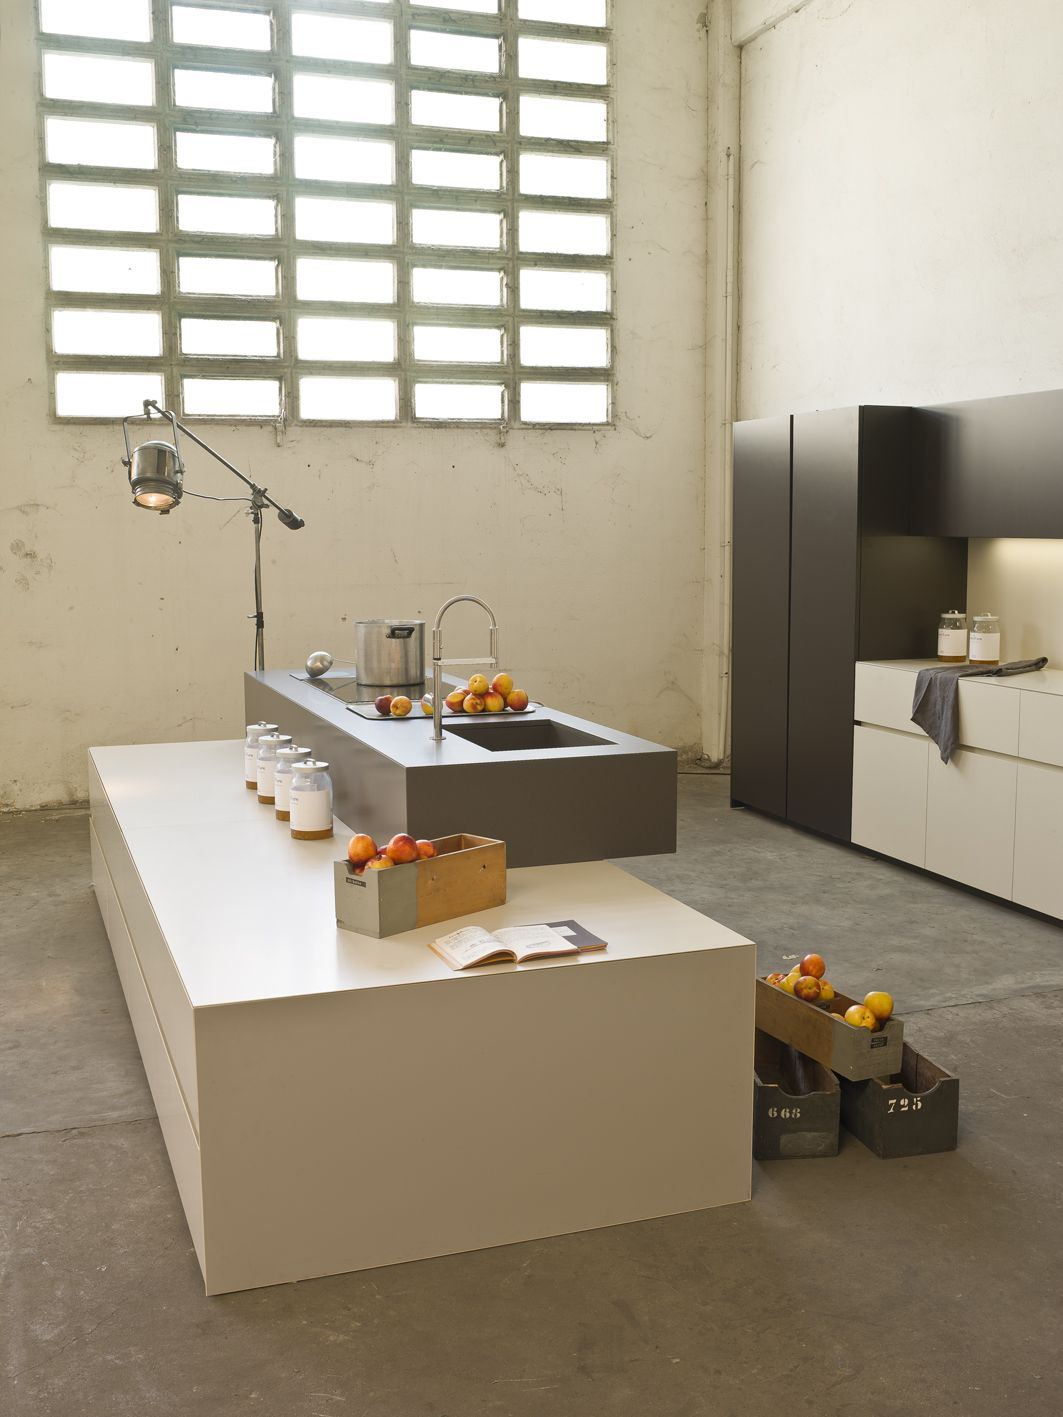 Industrial Kitchen Flooring An Industrial Kitchen With Elegance Uses Lapitecar Satin Finish In